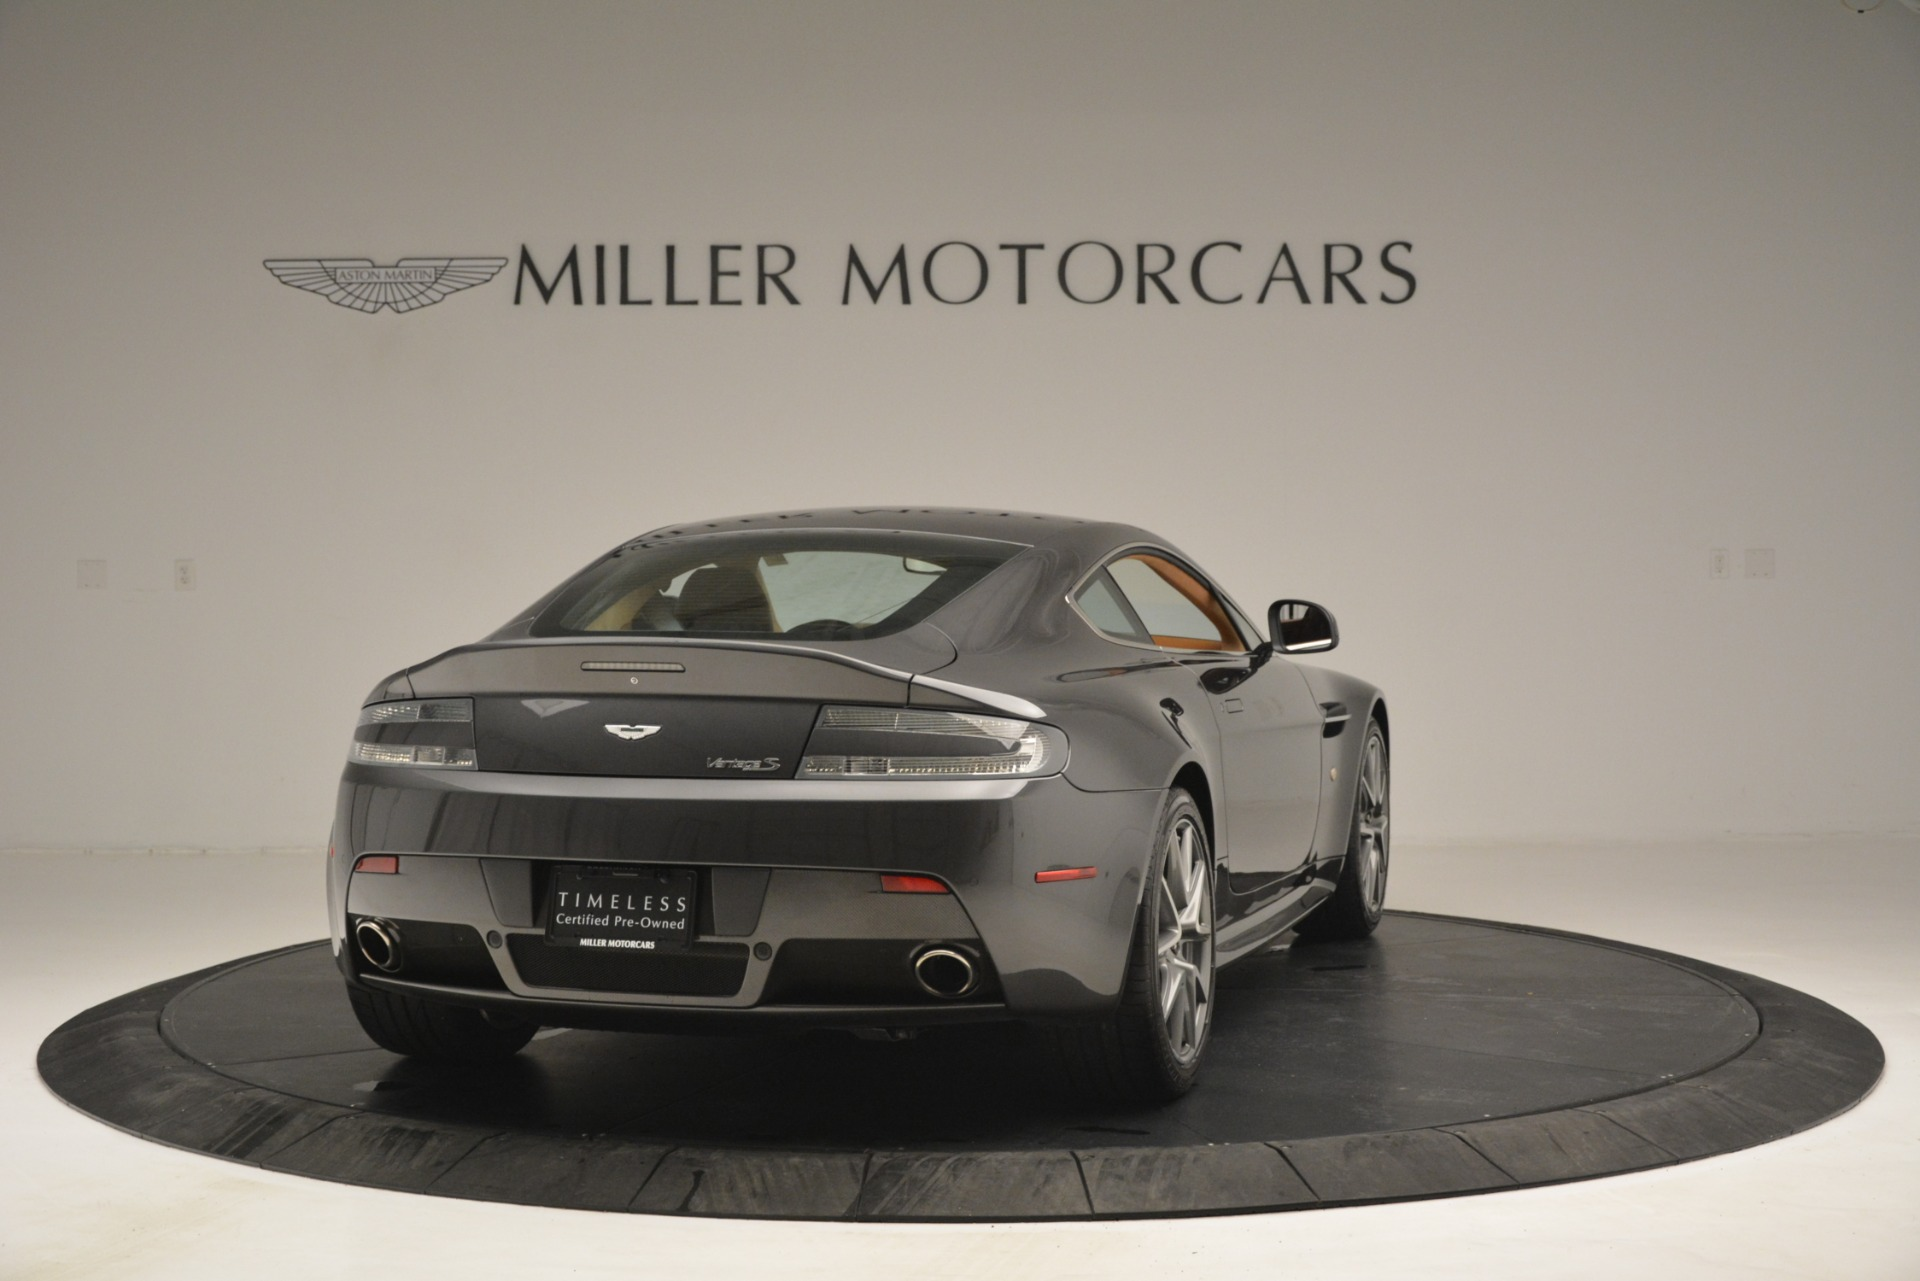 Used 2012 Aston Martin V8 Vantage S Coupe For Sale In Westport, CT 2951_p7